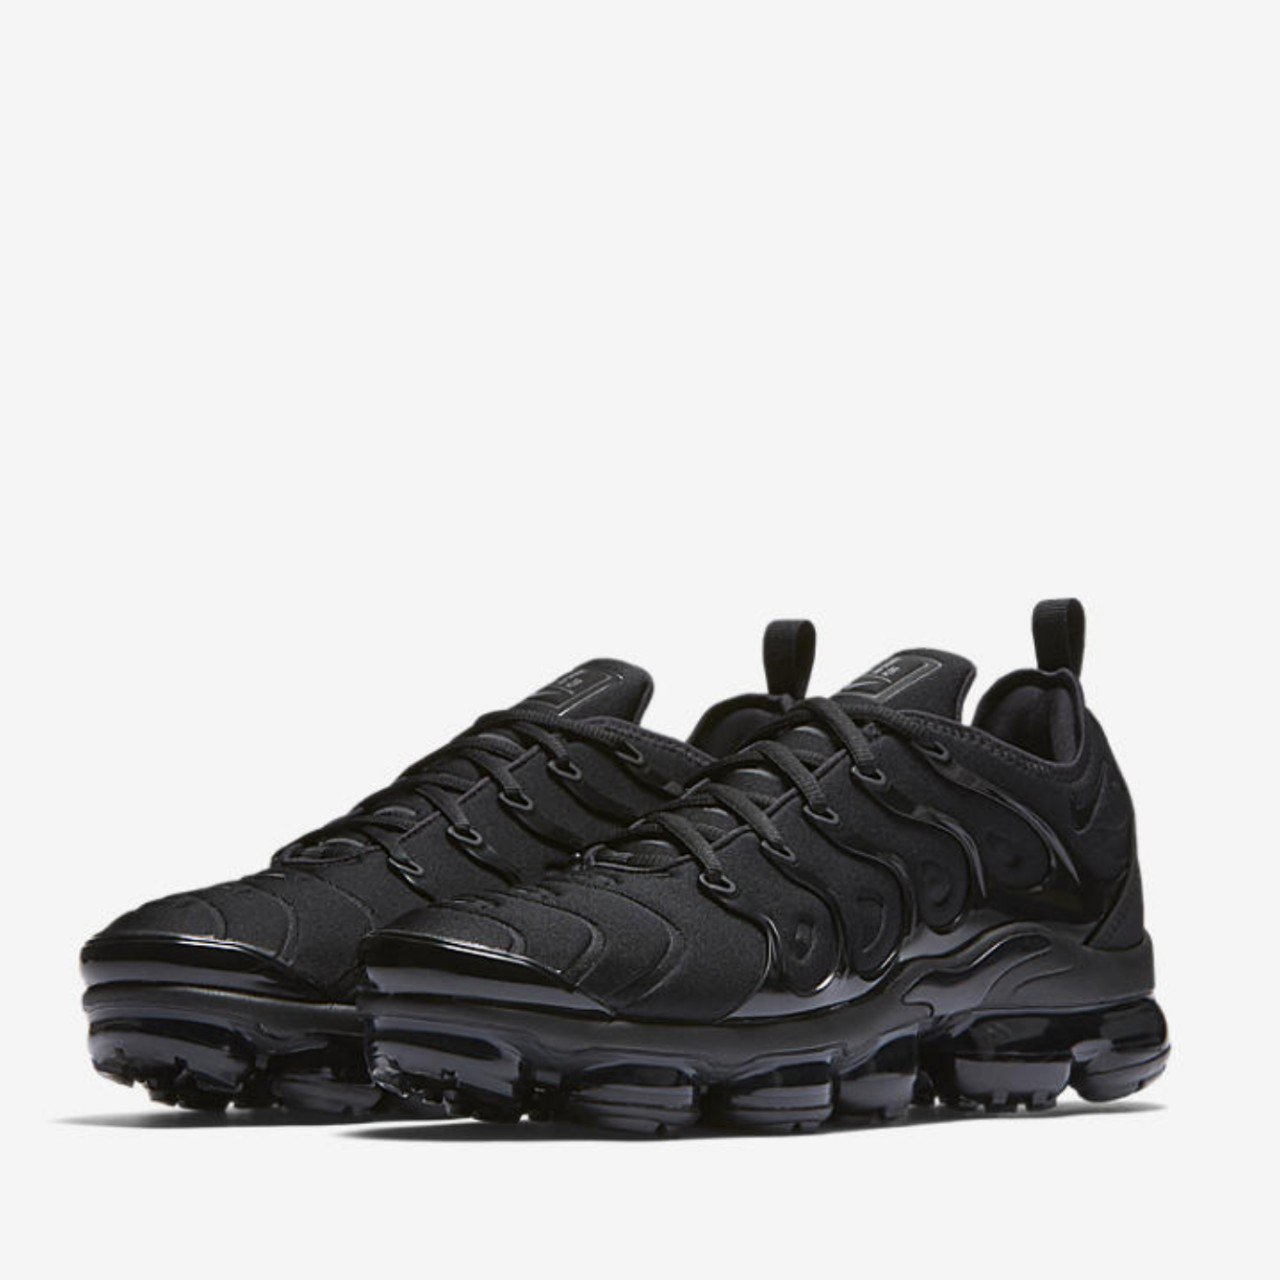 6a5301e39312 Nike Air Vapormax Plus Triple Black UK8.5 Exclusives Brand x - Depop